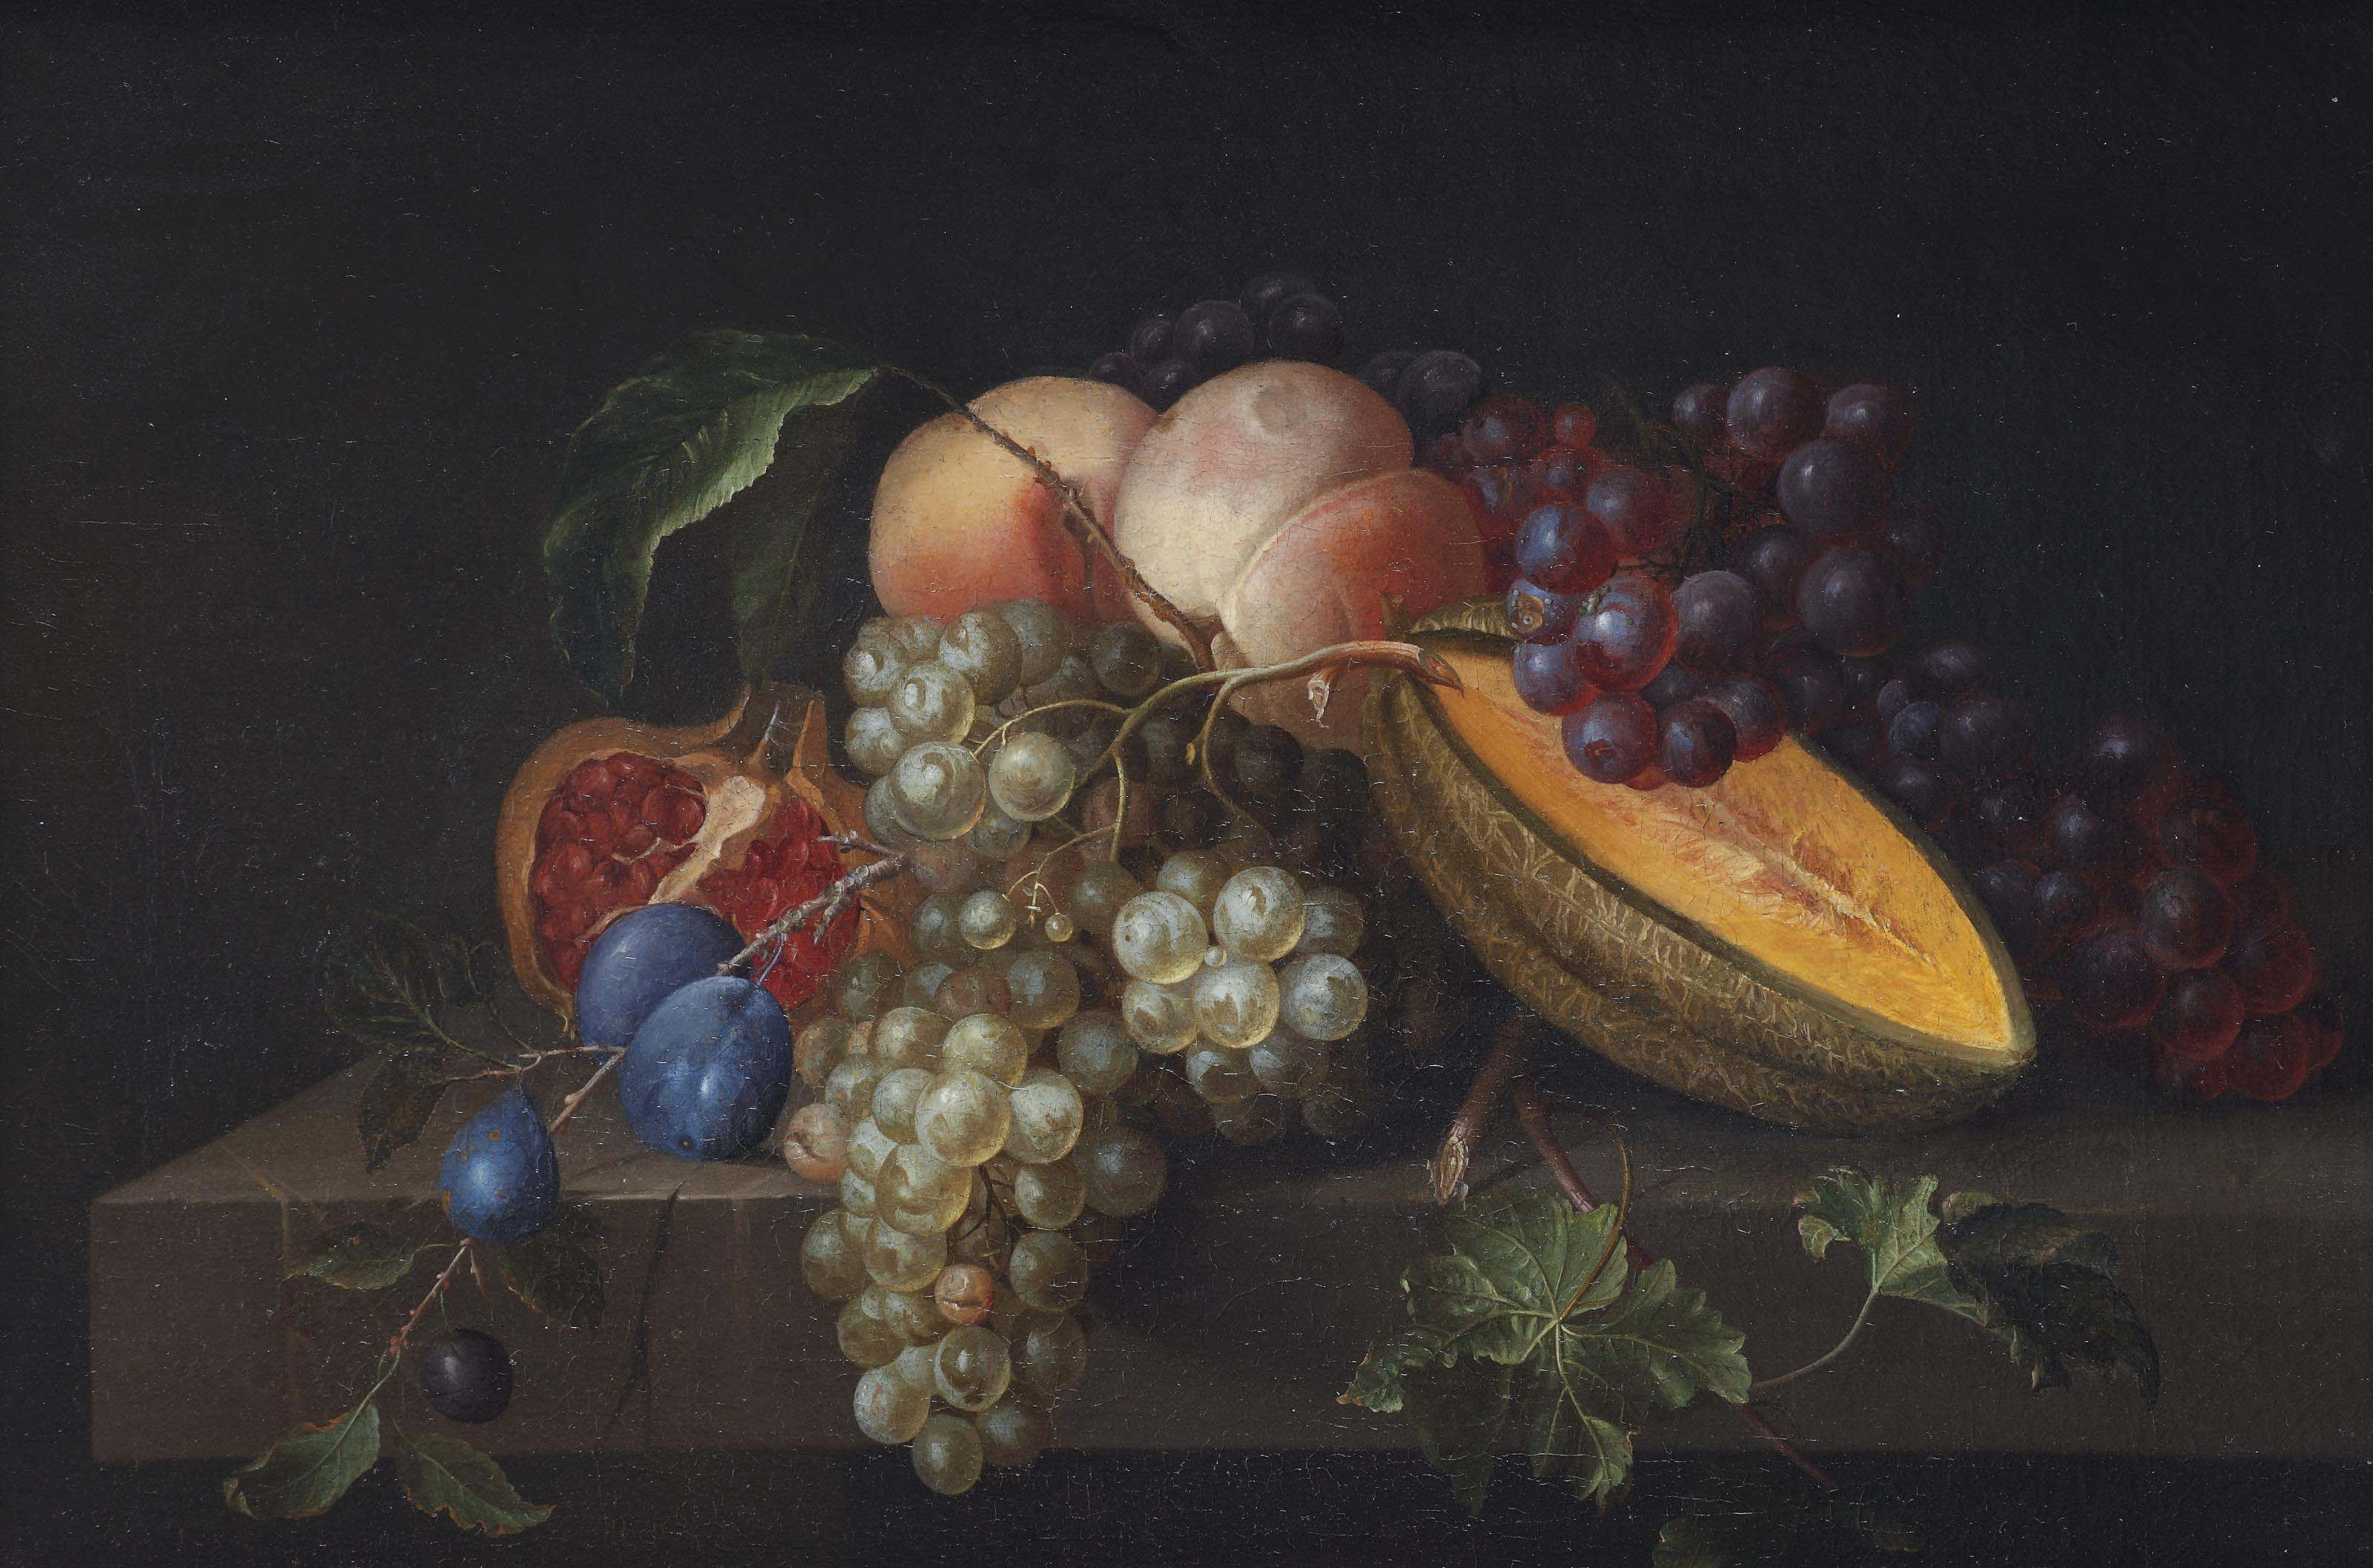 A melon, peach, plum, pomegranate and grapes on a stone ledge